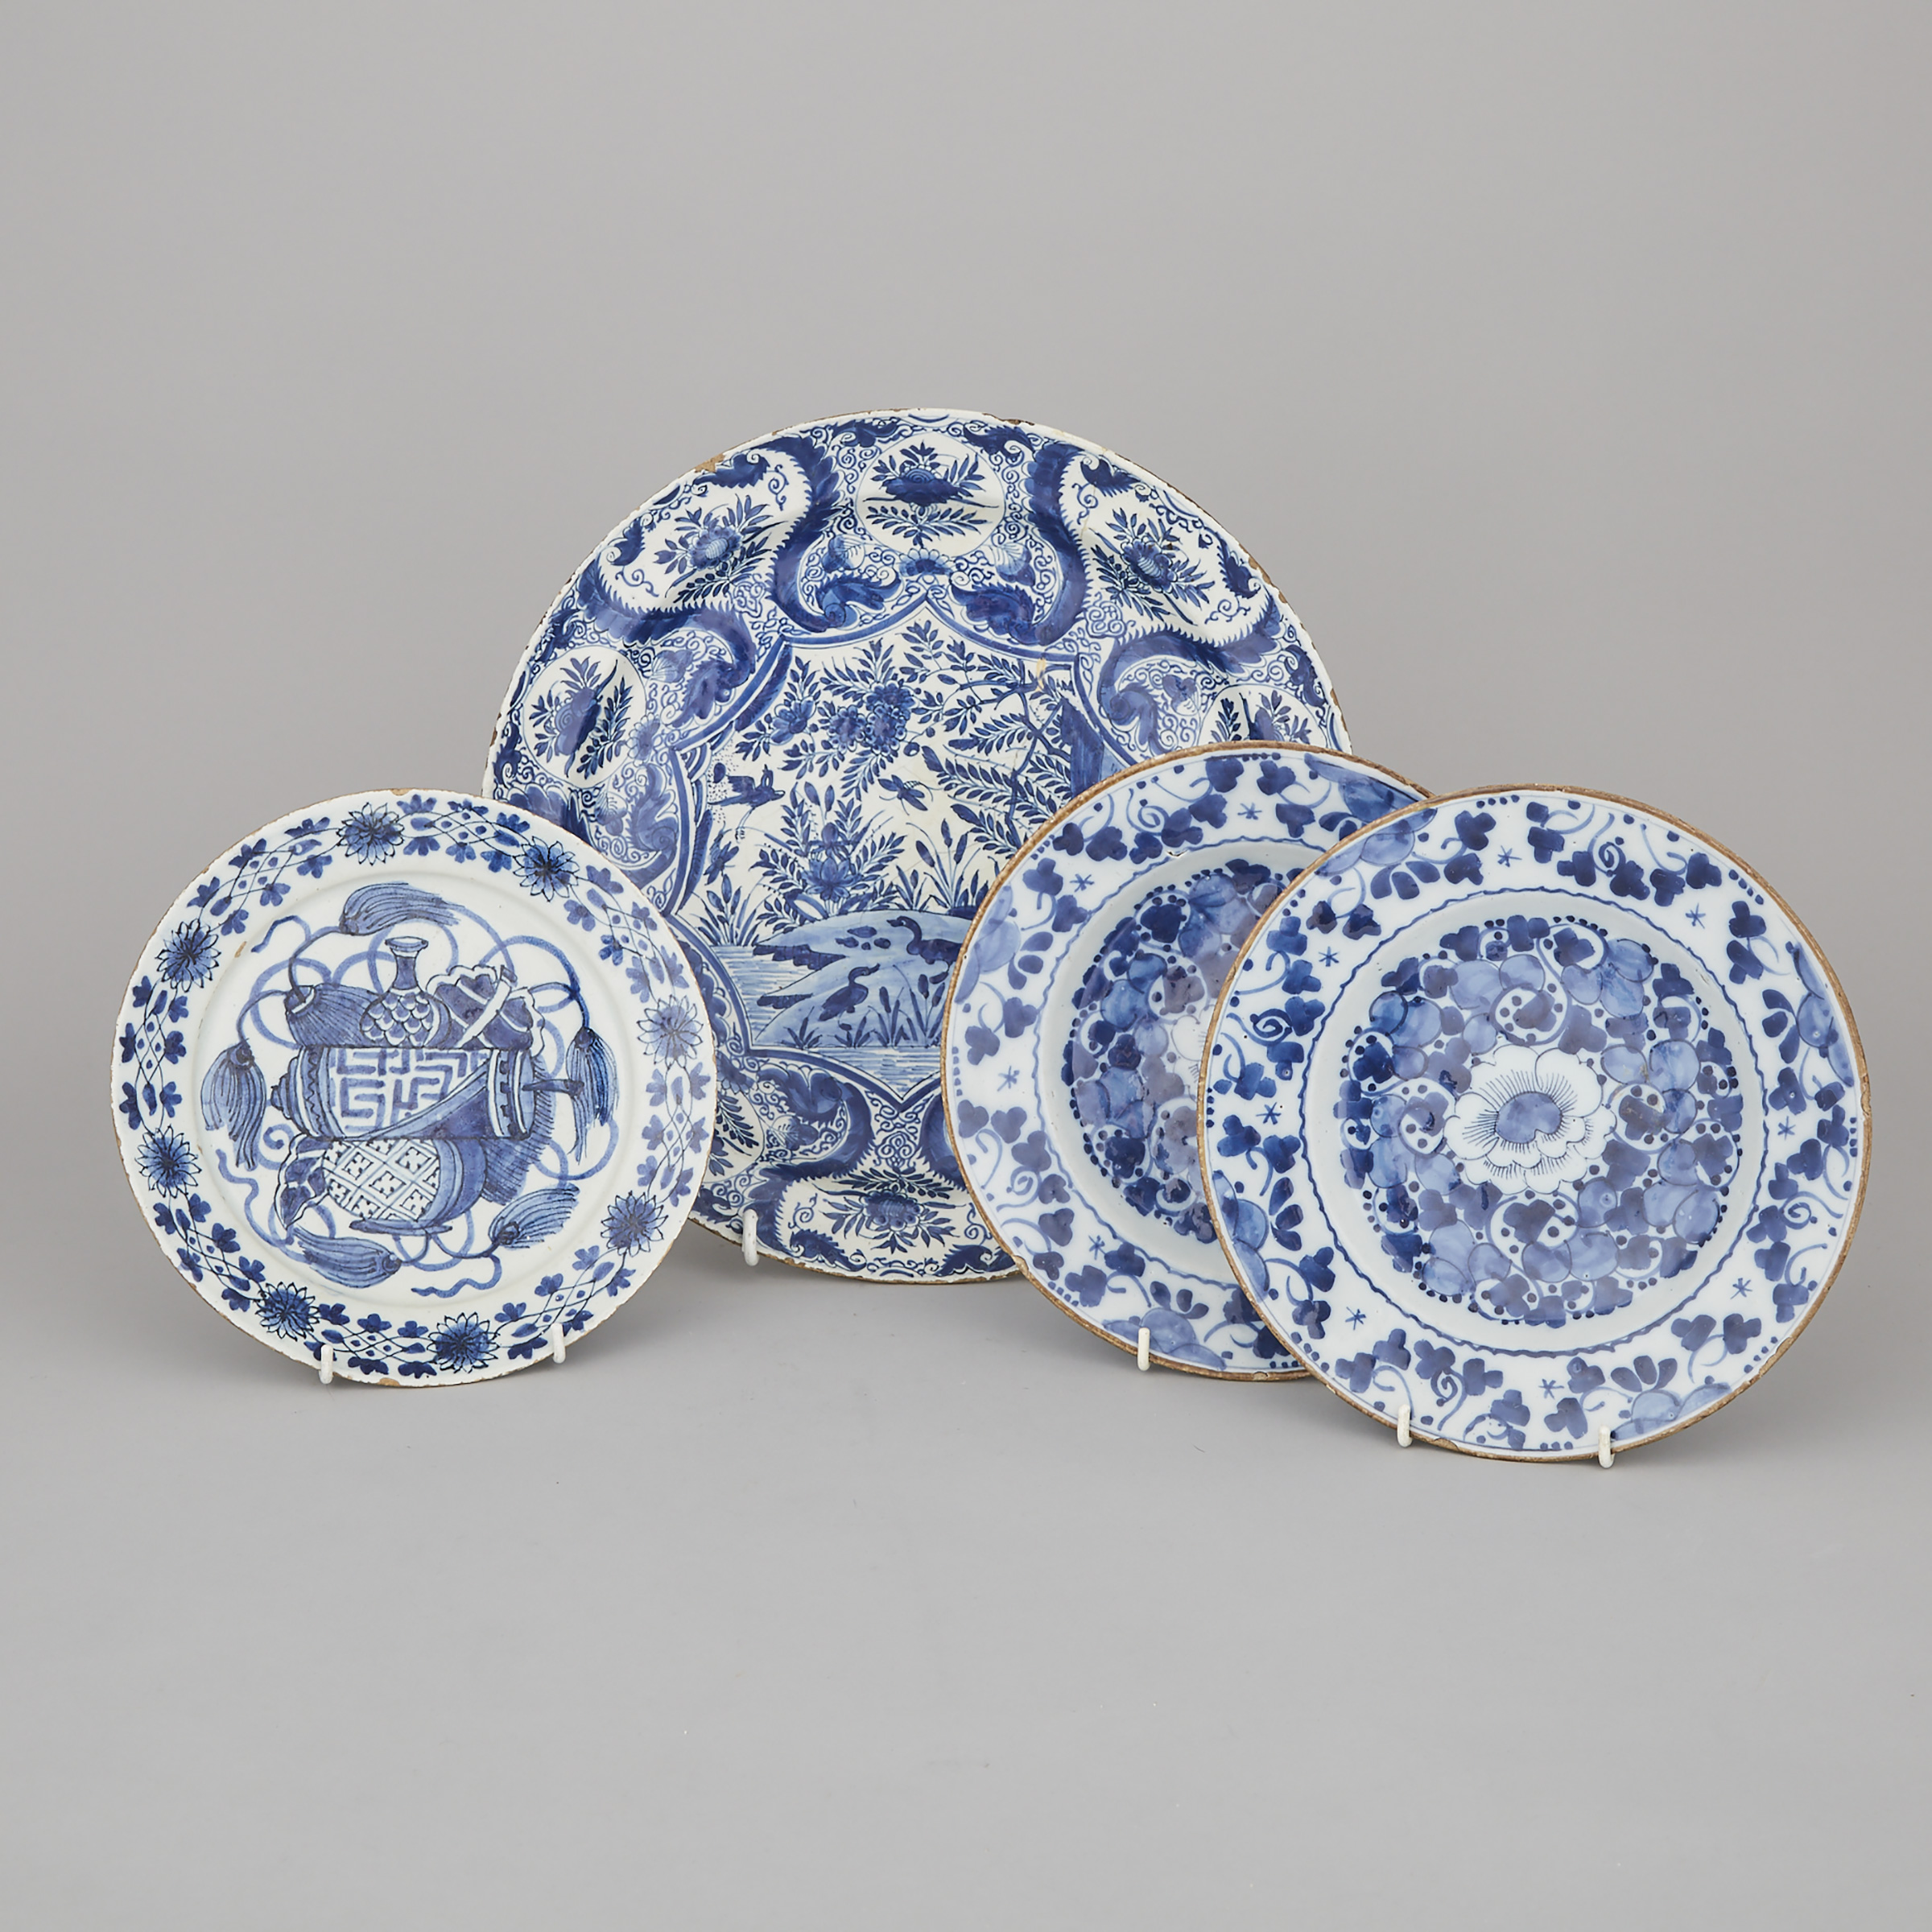 Dutch Delft Blue and White Charger, De Porceleyne Klaeuw, and Three Plates, second half of the 18th century